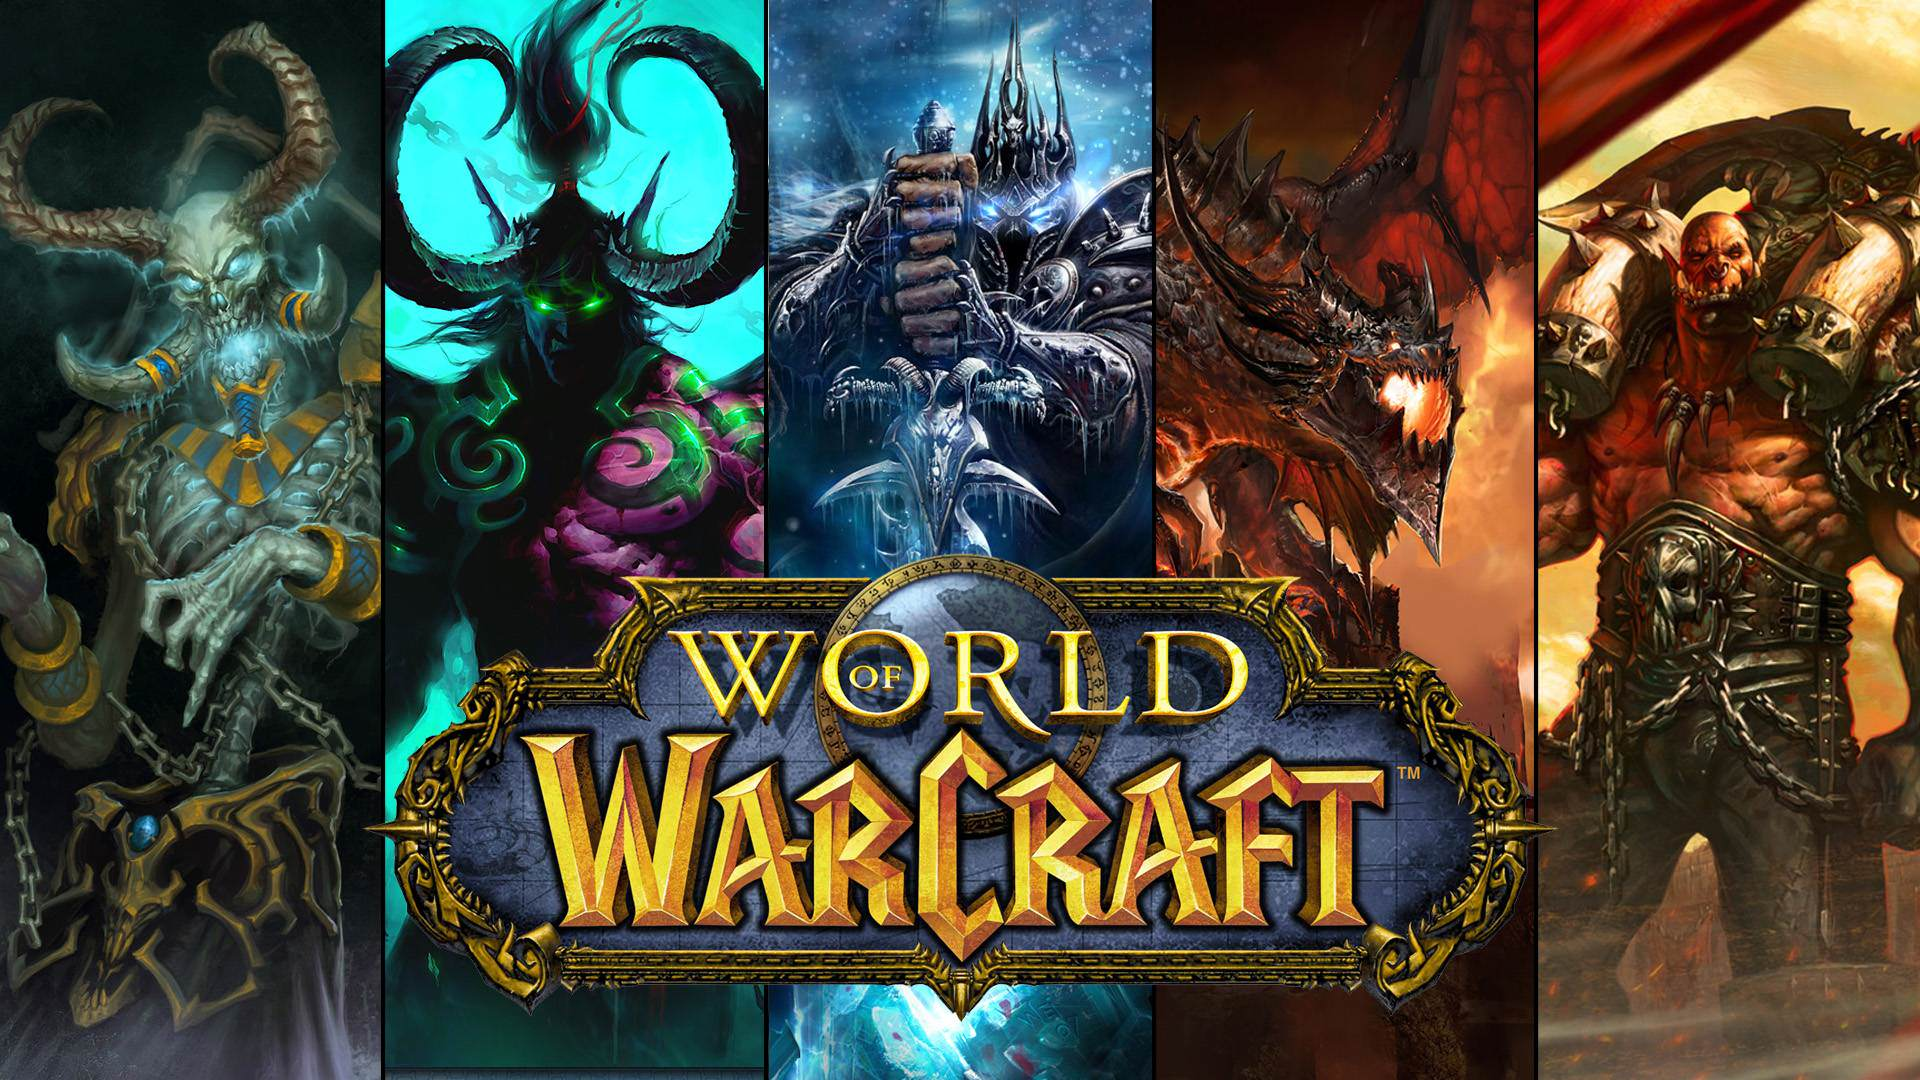 WoW Boss Compilation Wallpaper Fans Furious As Blizzard Shut Down Popular Vanilla WoW Server